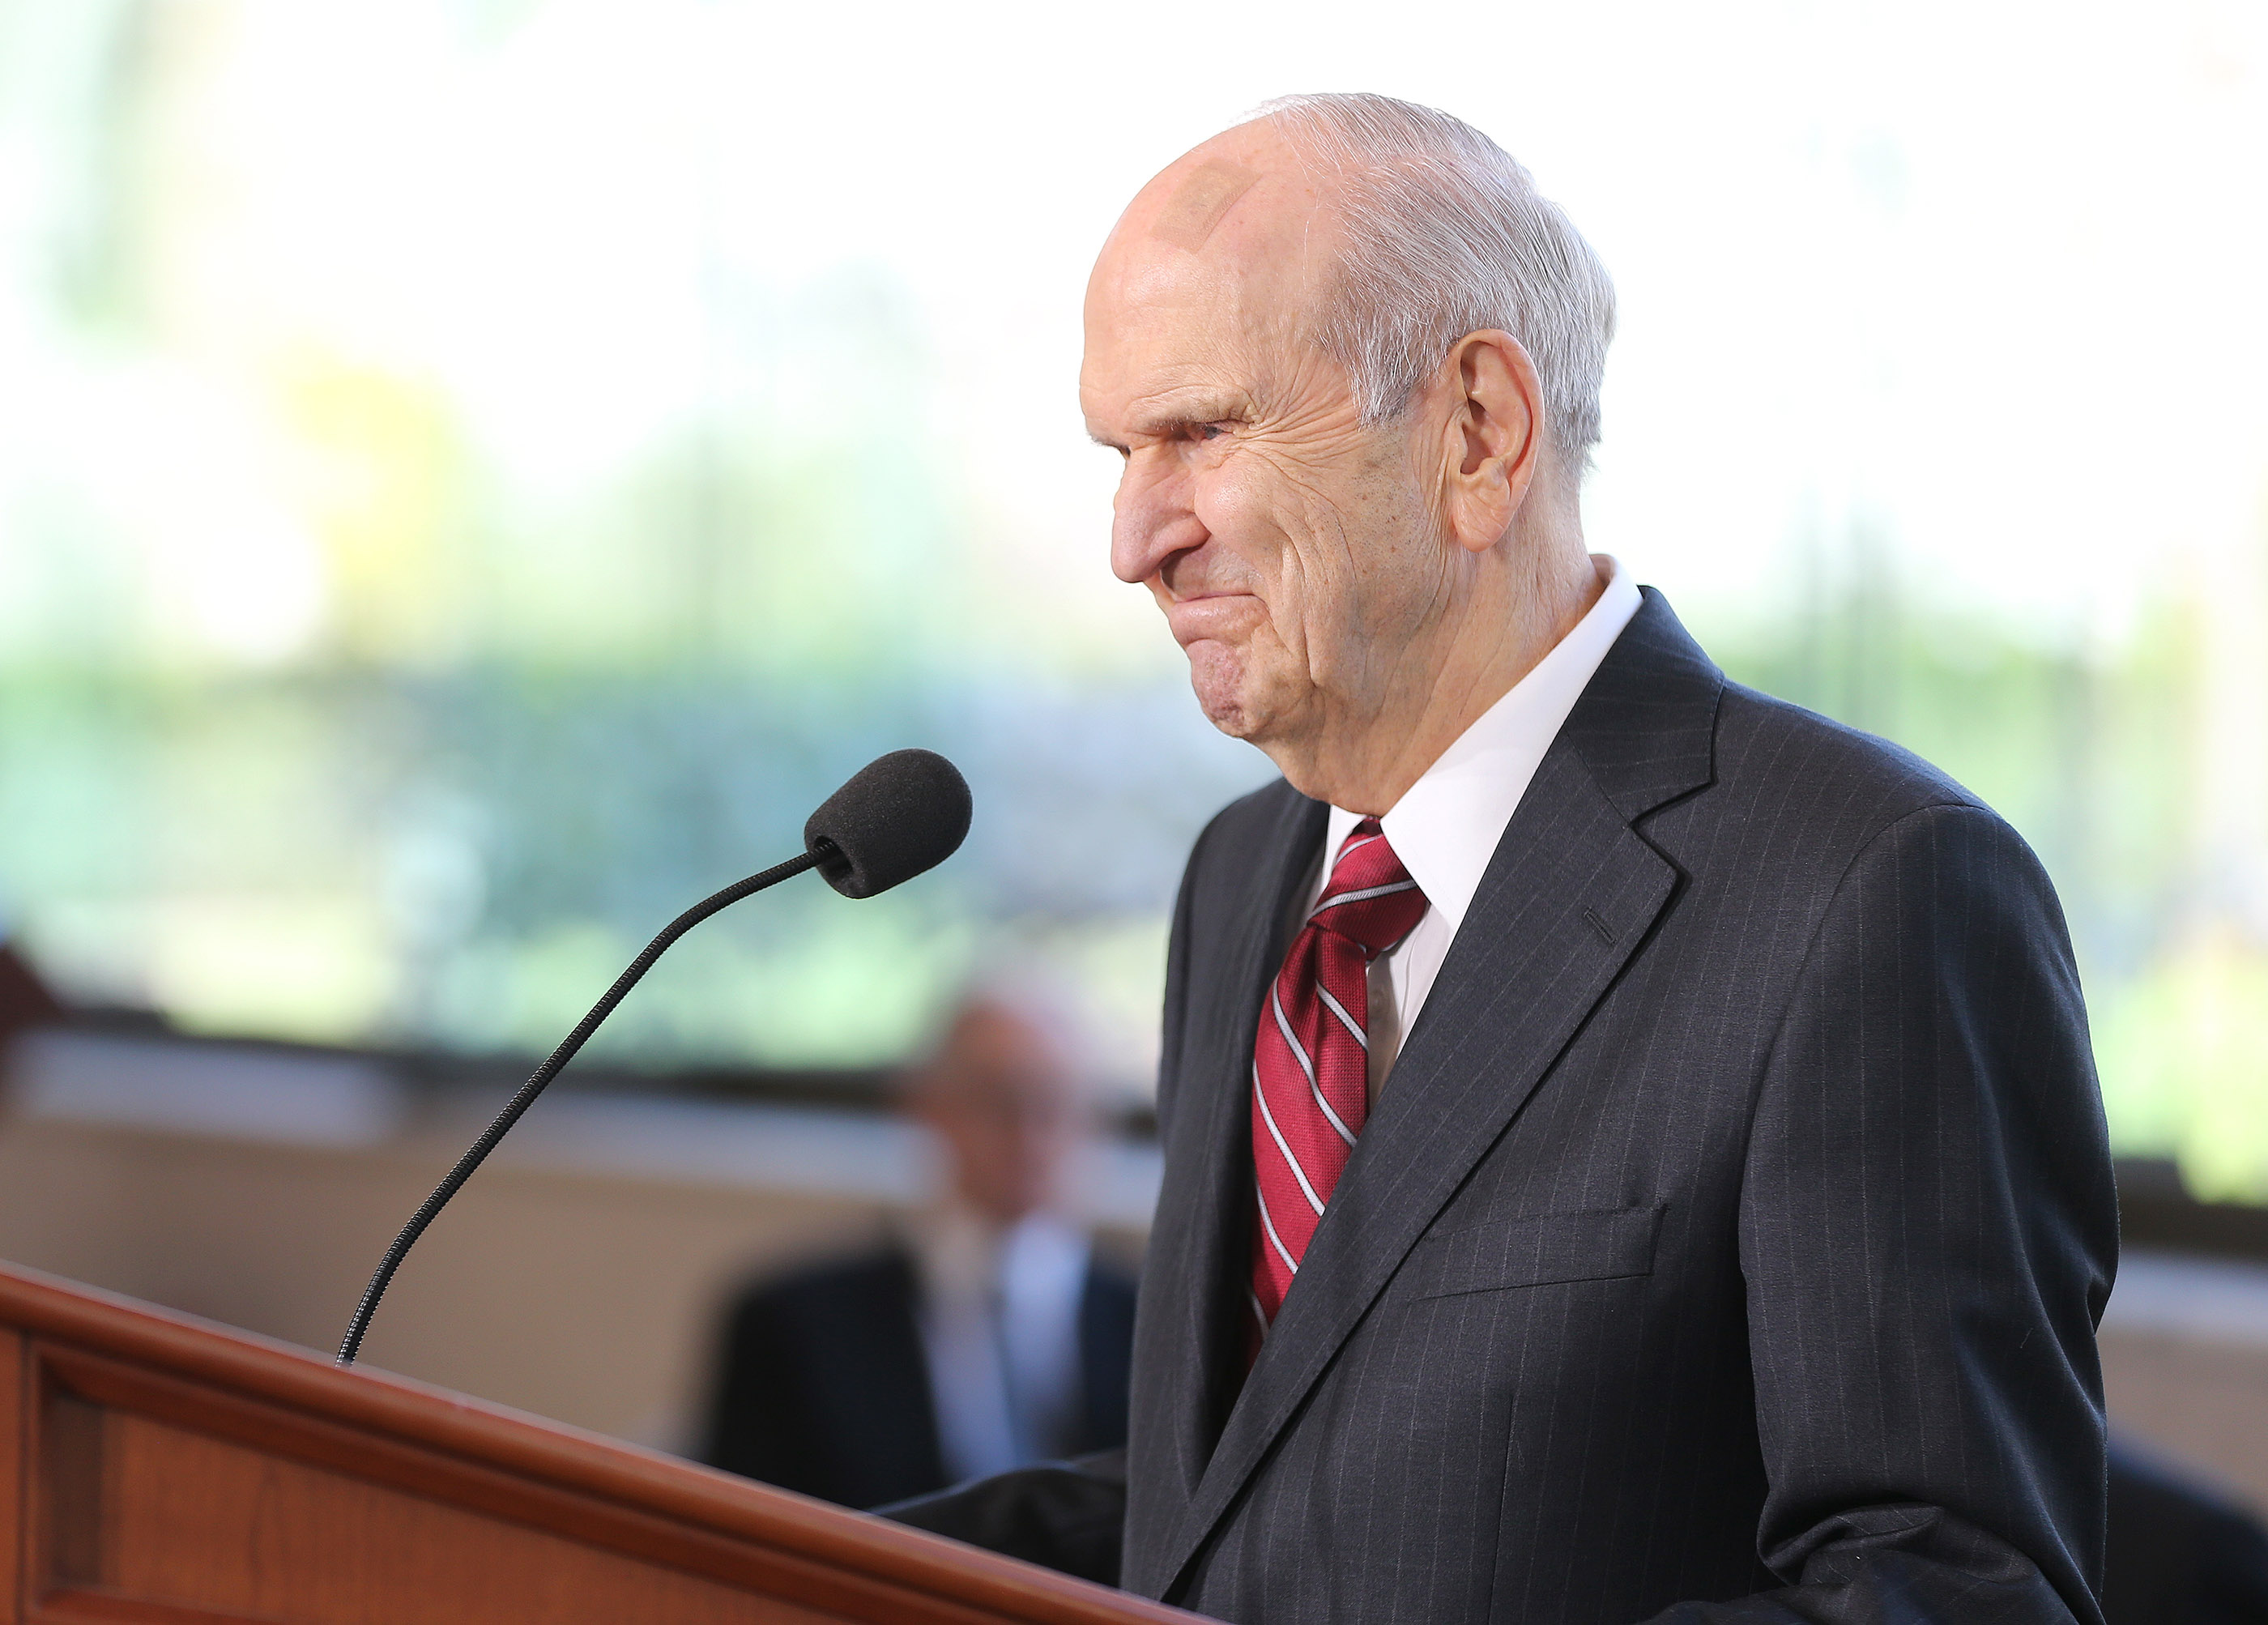 President Russell M. Nelson of The Church of Jesus Christ of Latter-day Saints speaks during a press conference in Salt Lake City on Friday, April 19, 2019, announcing renovation plans for the Salt Lake Temple and Temple Square.